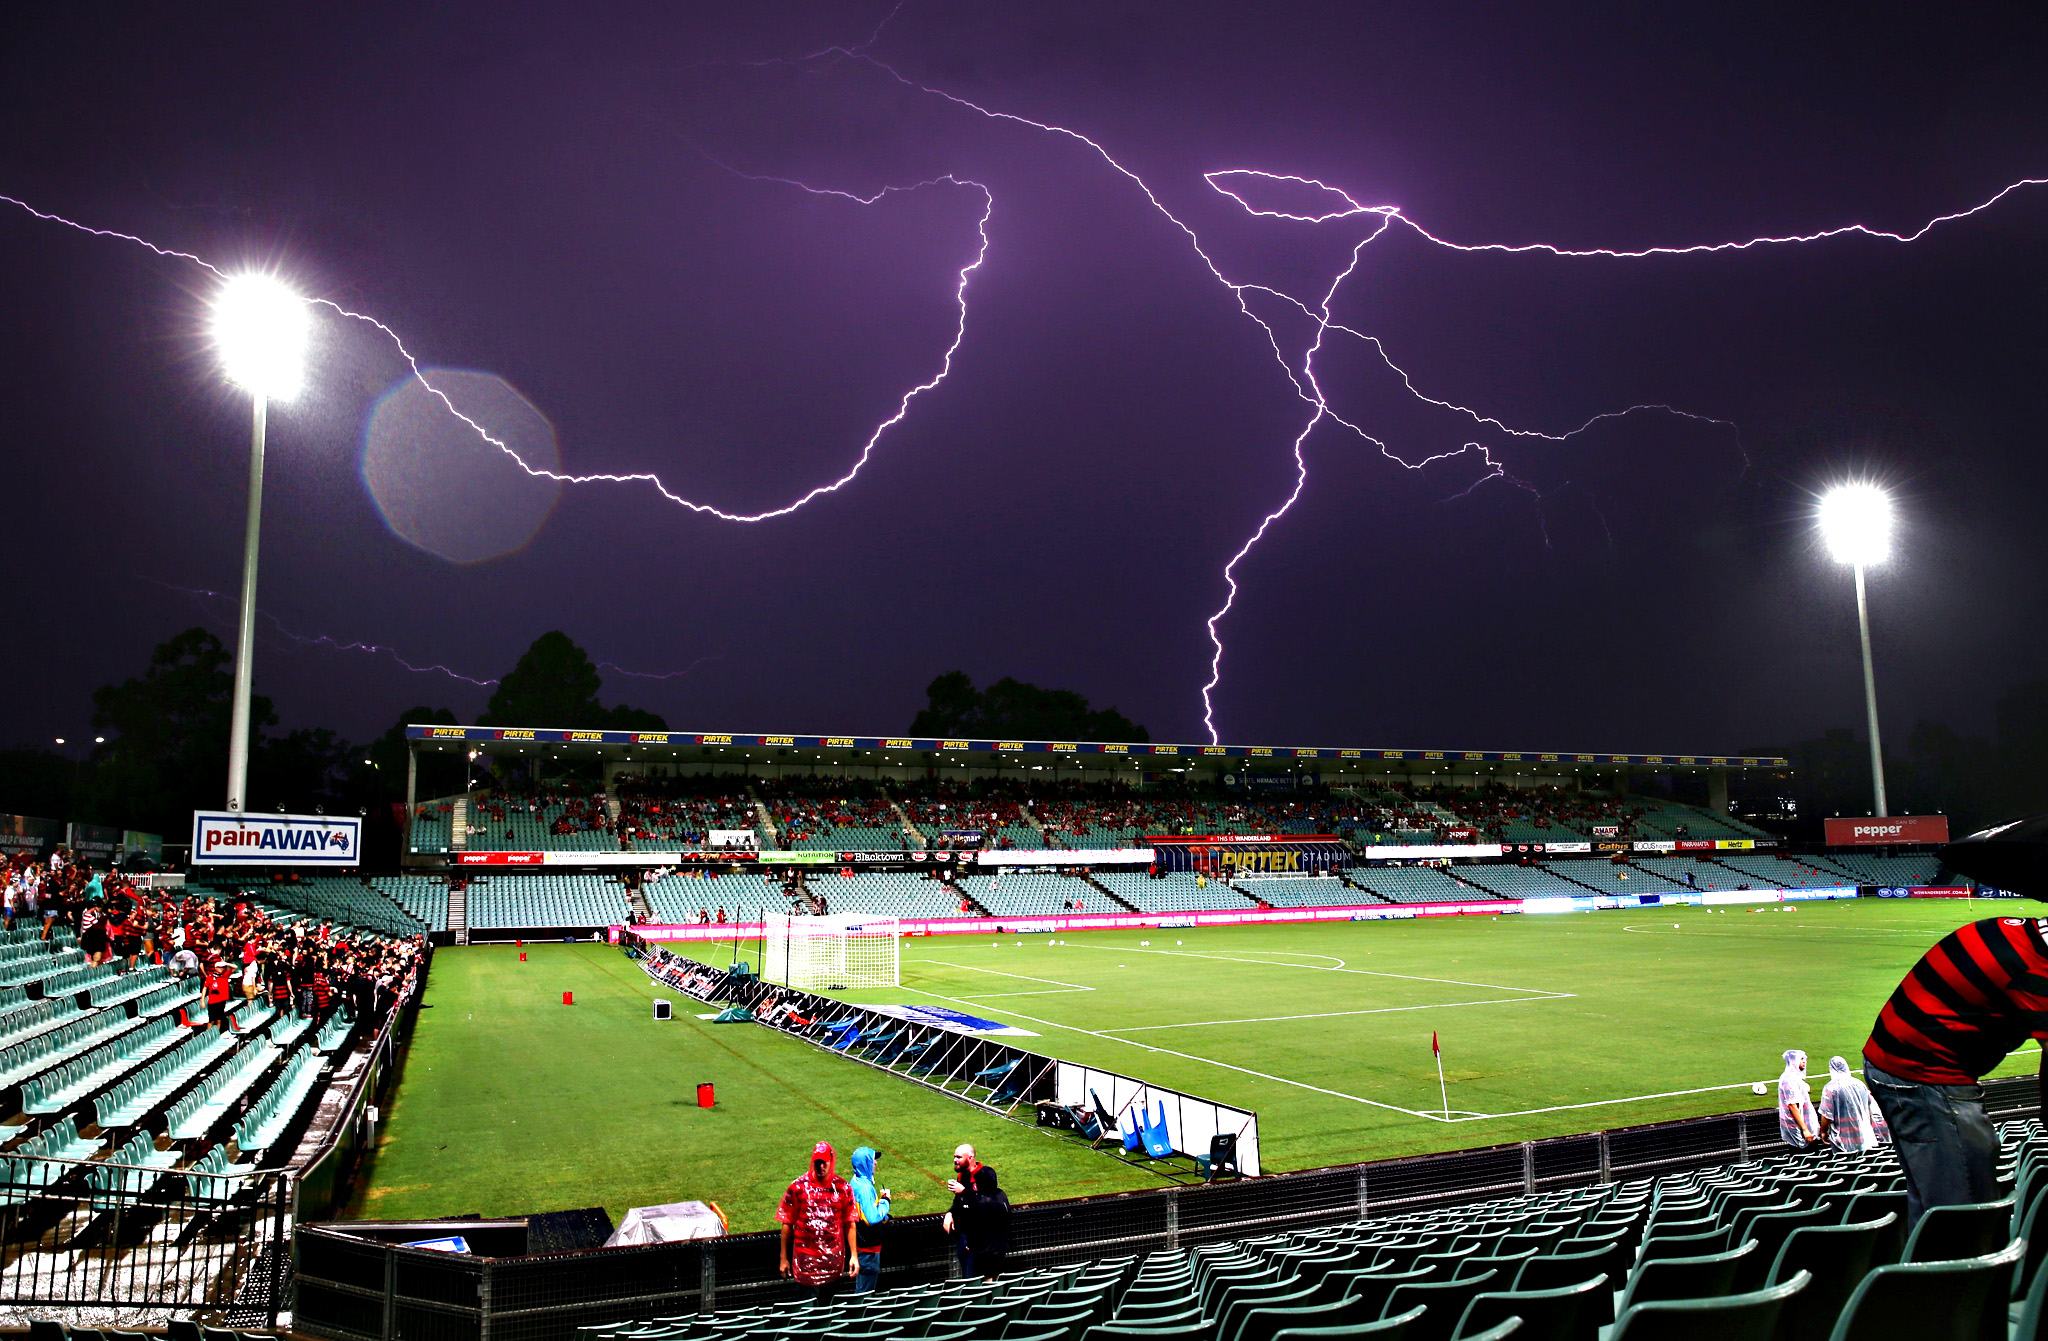 Lightning strikes delay the start of play before the round 21 A-League match between the Western Sydney Wanderers and Melbourne City FC at Pirtek Stadium on Wednesday in Sydney, Australia